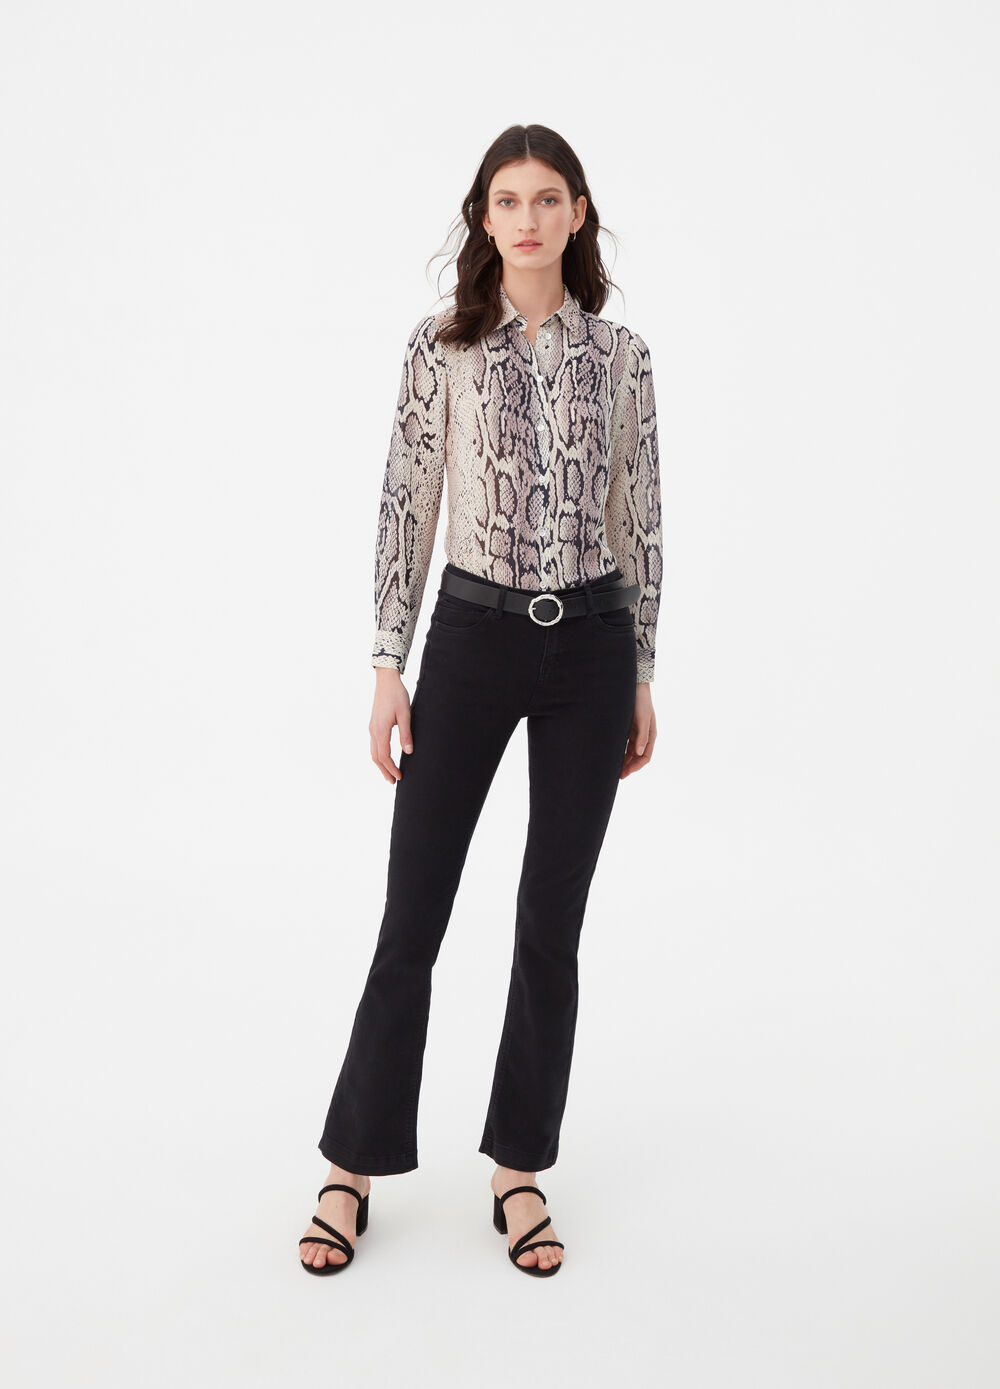 Snakeskin print shirt with bluff collar